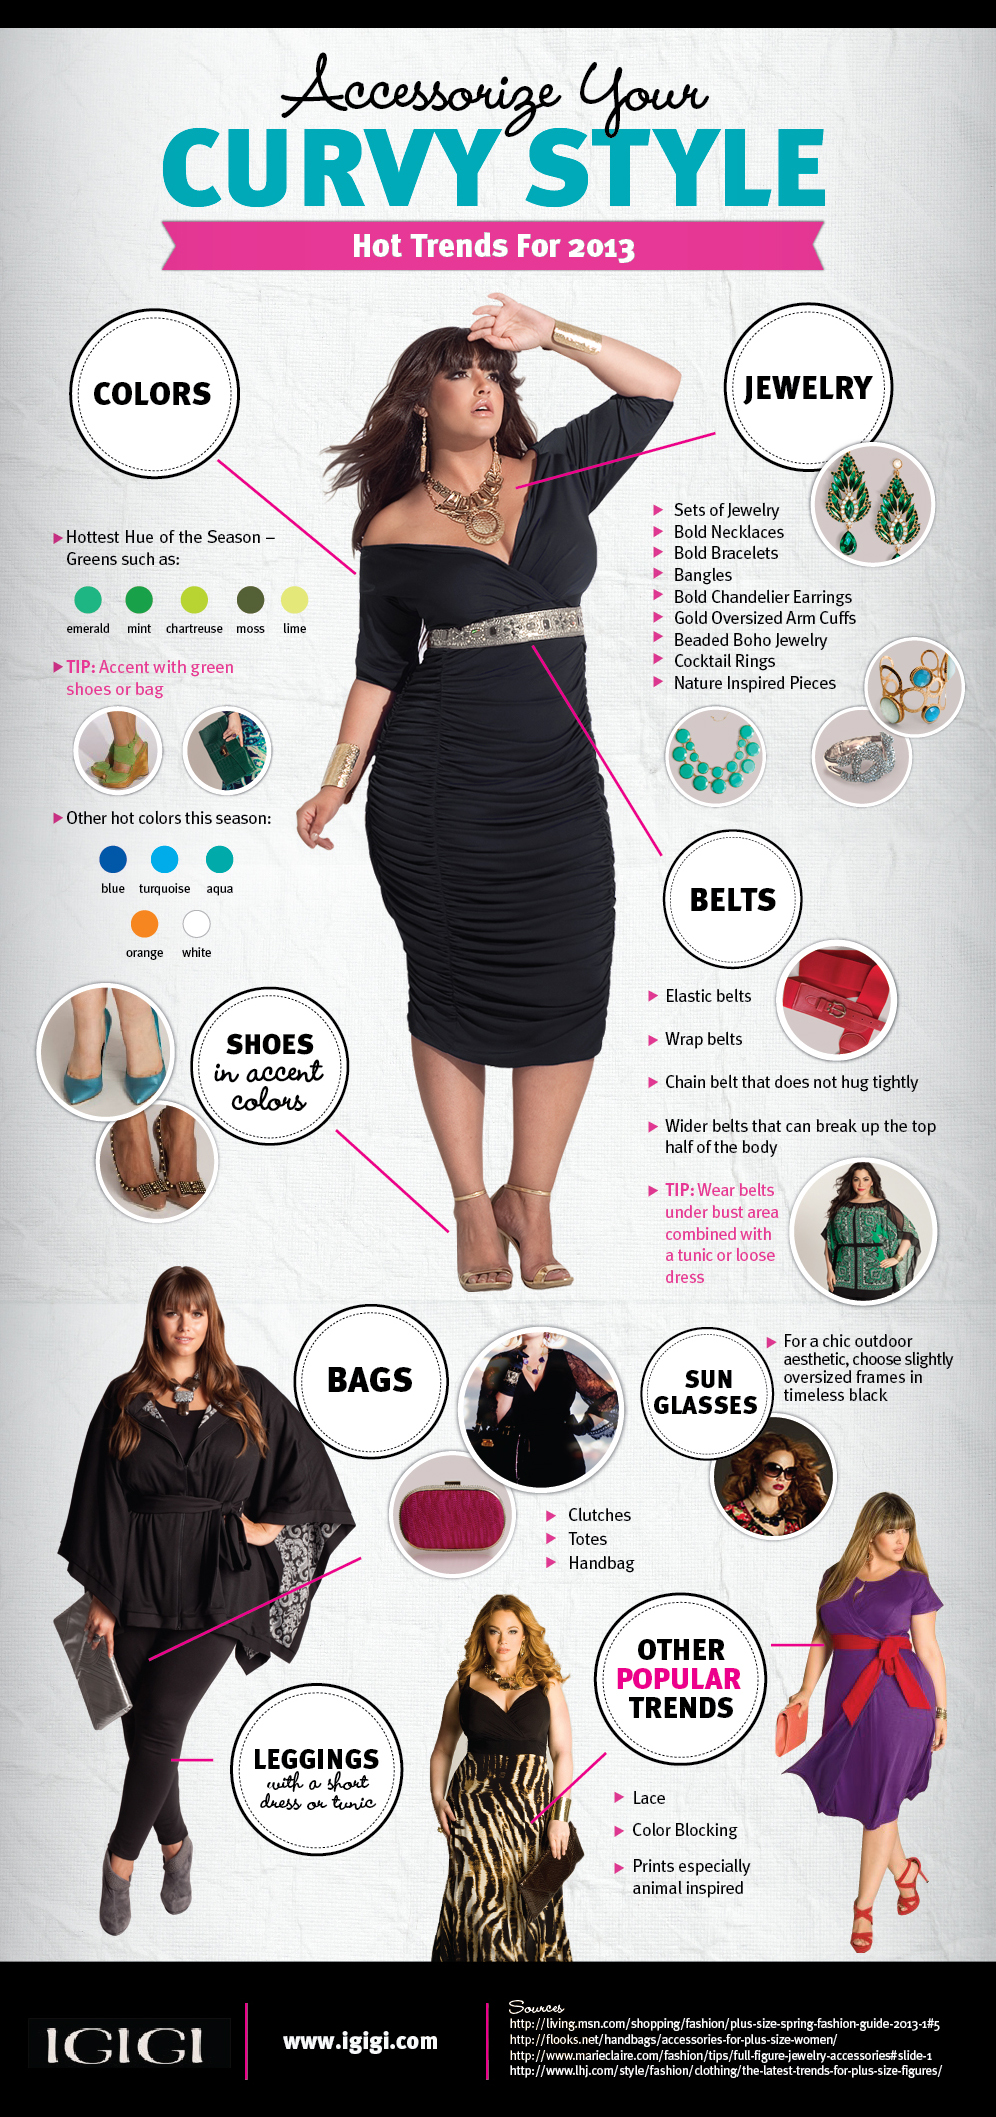 Fashioning your curvy style